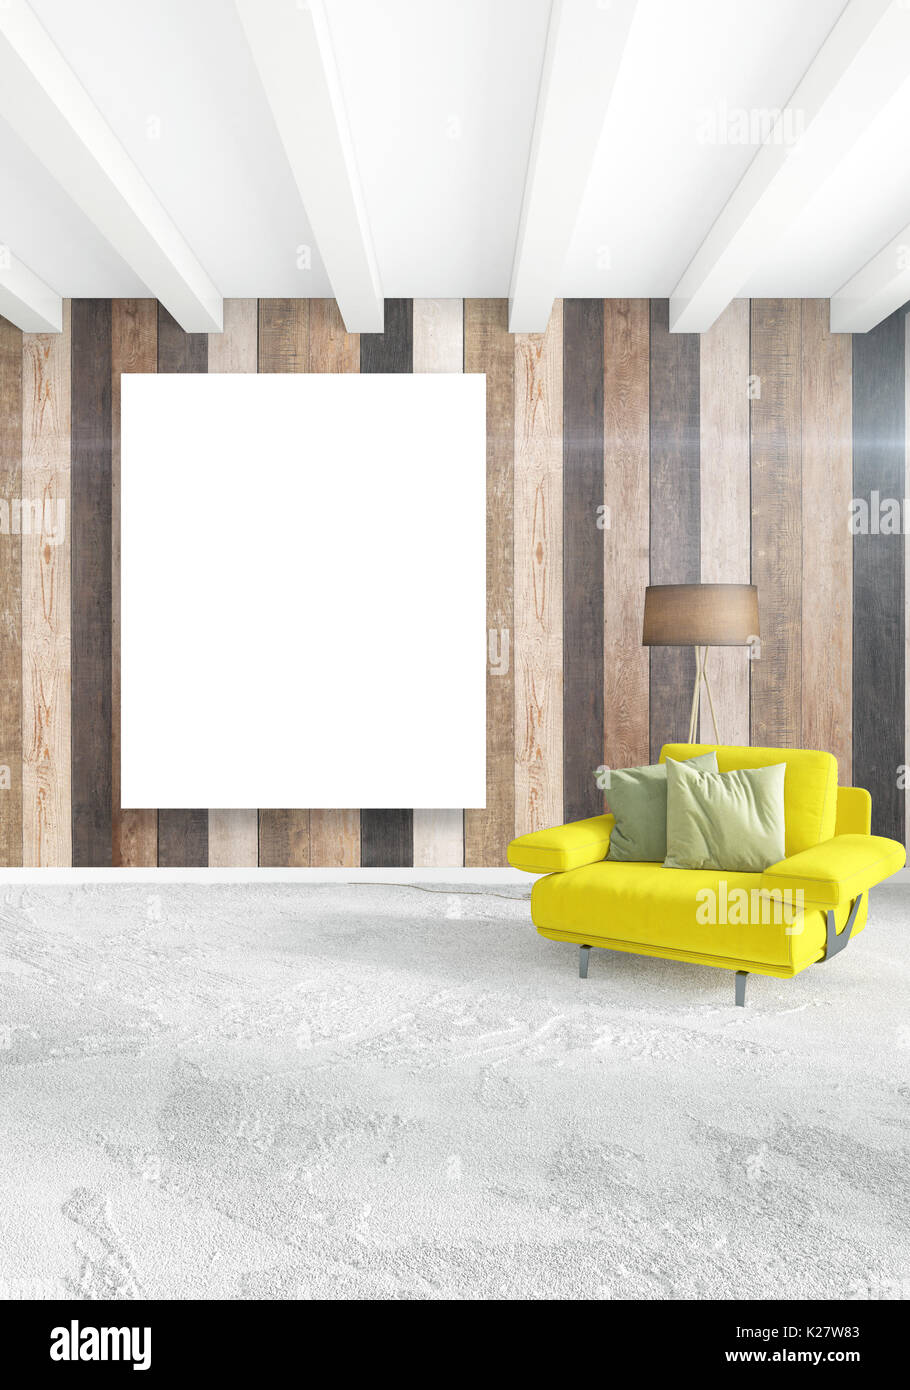 White bedroom minimal style interior design with wood wall and grey sofa 3d rendering 3d illustration